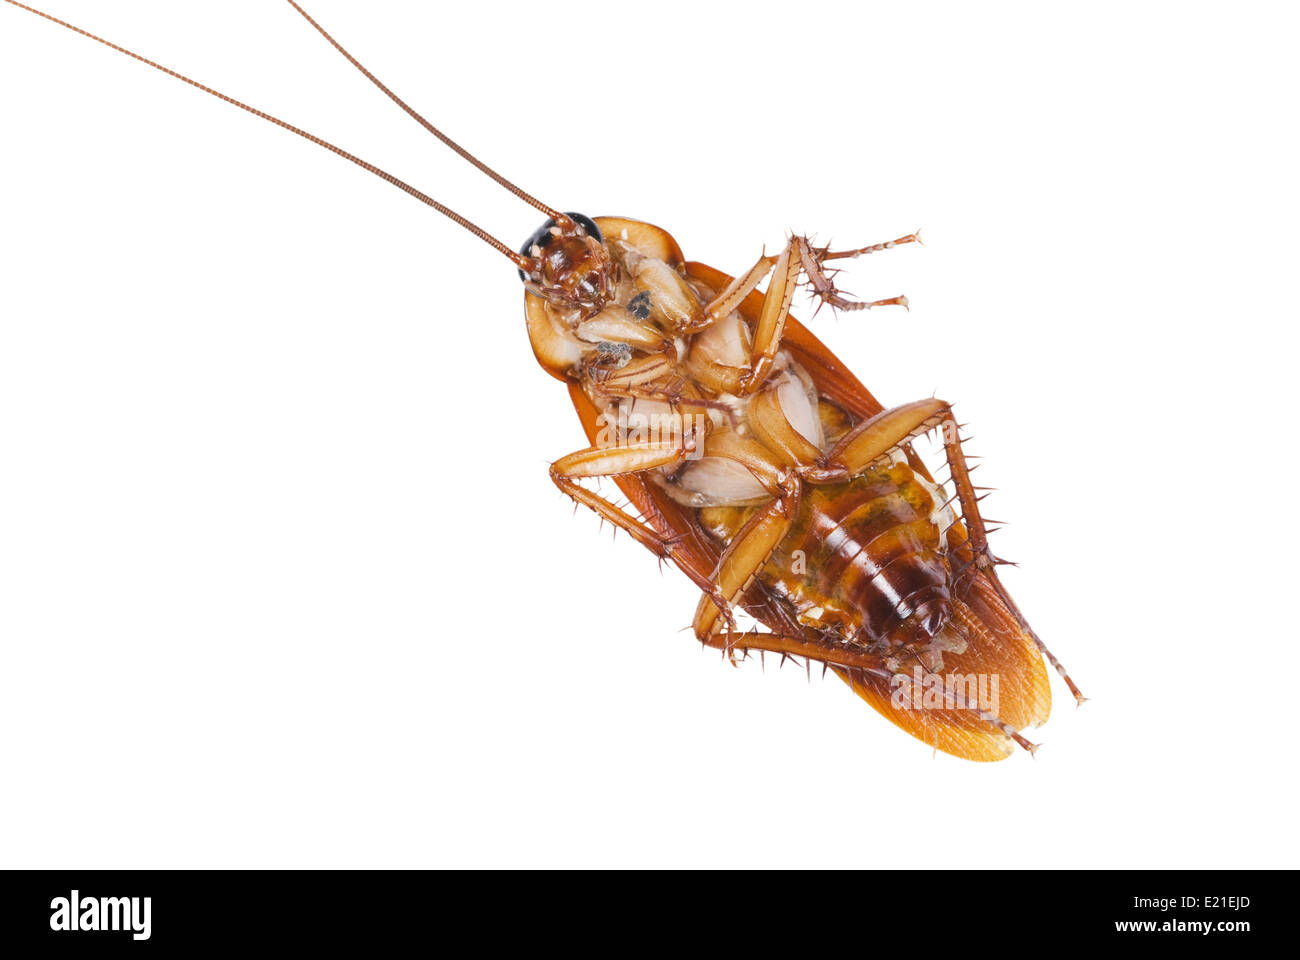 Cockroach be killed a moment ago. - Stock Image